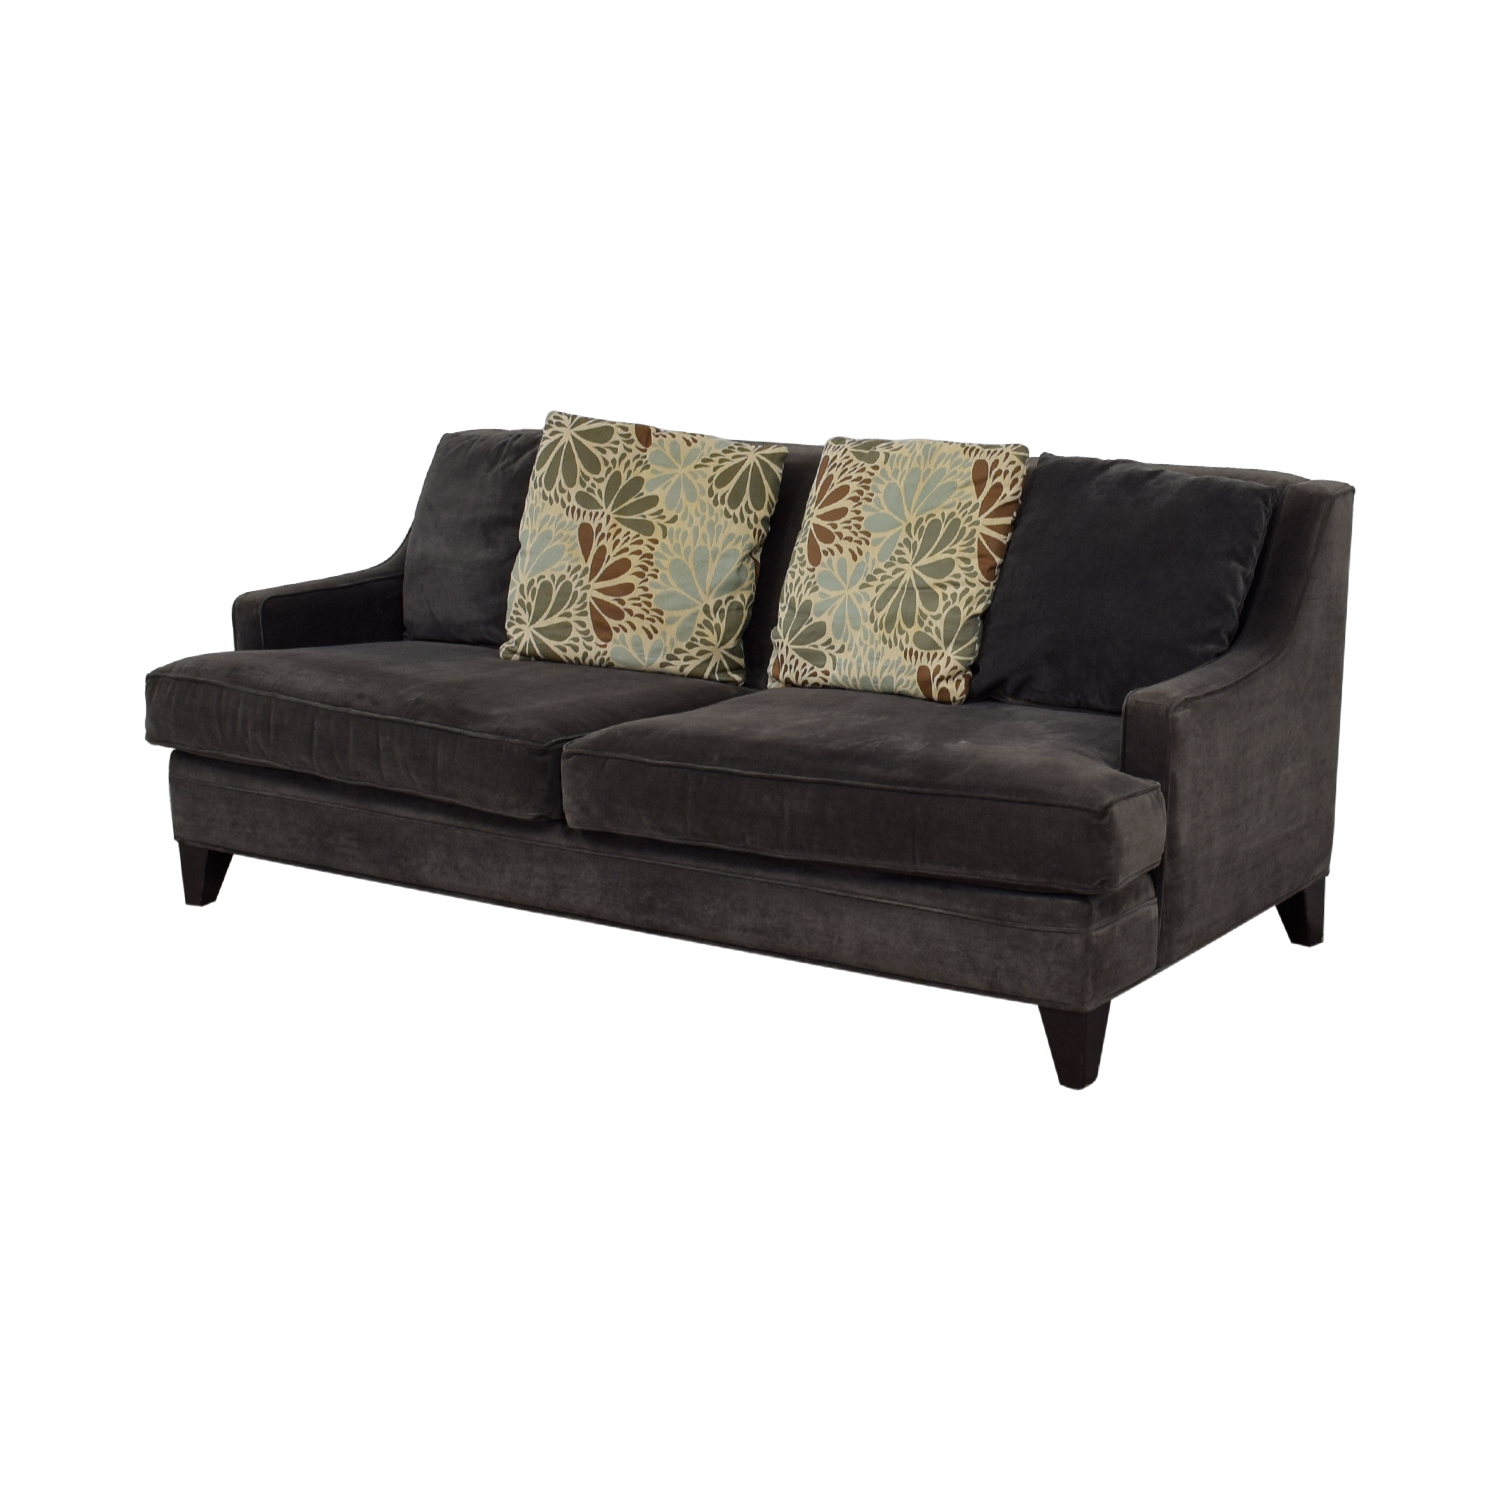 [%76% Off – Jordan's Furniture Jordan's Furniture Grey Microfiber Two Cushion  Sofa / Sofas Regarding Most Current Bryant Loveseats With Cushion|Bryant Loveseats With Cushion With Most Recently Released 76% Off – Jordan's Furniture Jordan's Furniture Grey Microfiber Two Cushion  Sofa / Sofas|Most Recent Bryant Loveseats With Cushion Regarding 76% Off – Jordan's Furniture Jordan's Furniture Grey Microfiber Two Cushion  Sofa / Sofas|Popular 76% Off – Jordan's Furniture Jordan's Furniture Grey Microfiber Two Cushion  Sofa / Sofas In Bryant Loveseats With Cushion%] (View 2 of 20)